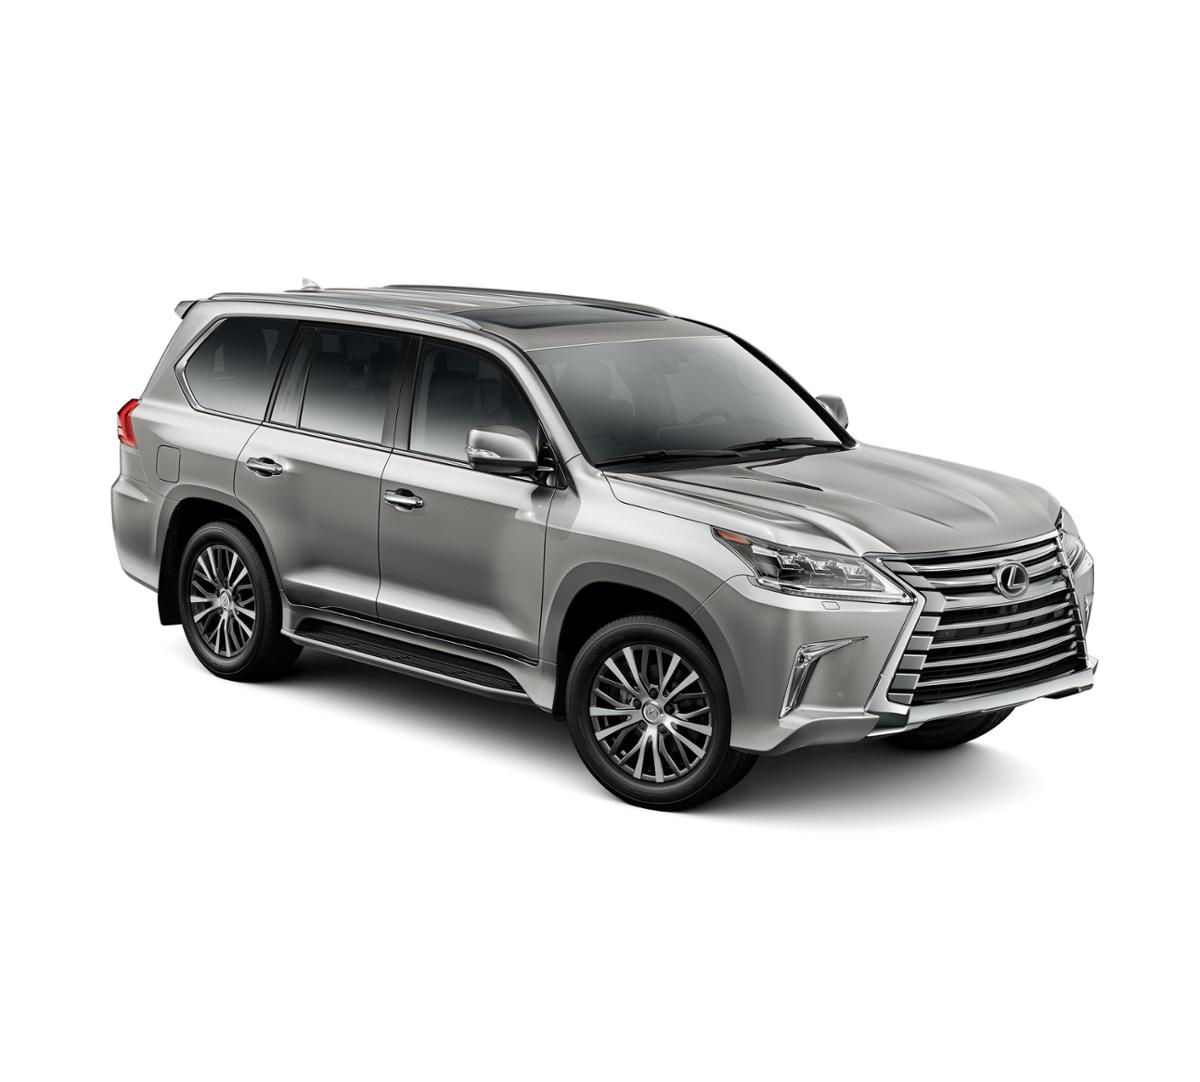 2018 Lexus LX 570 Vehicle Photo in Lakeway, TX 78734